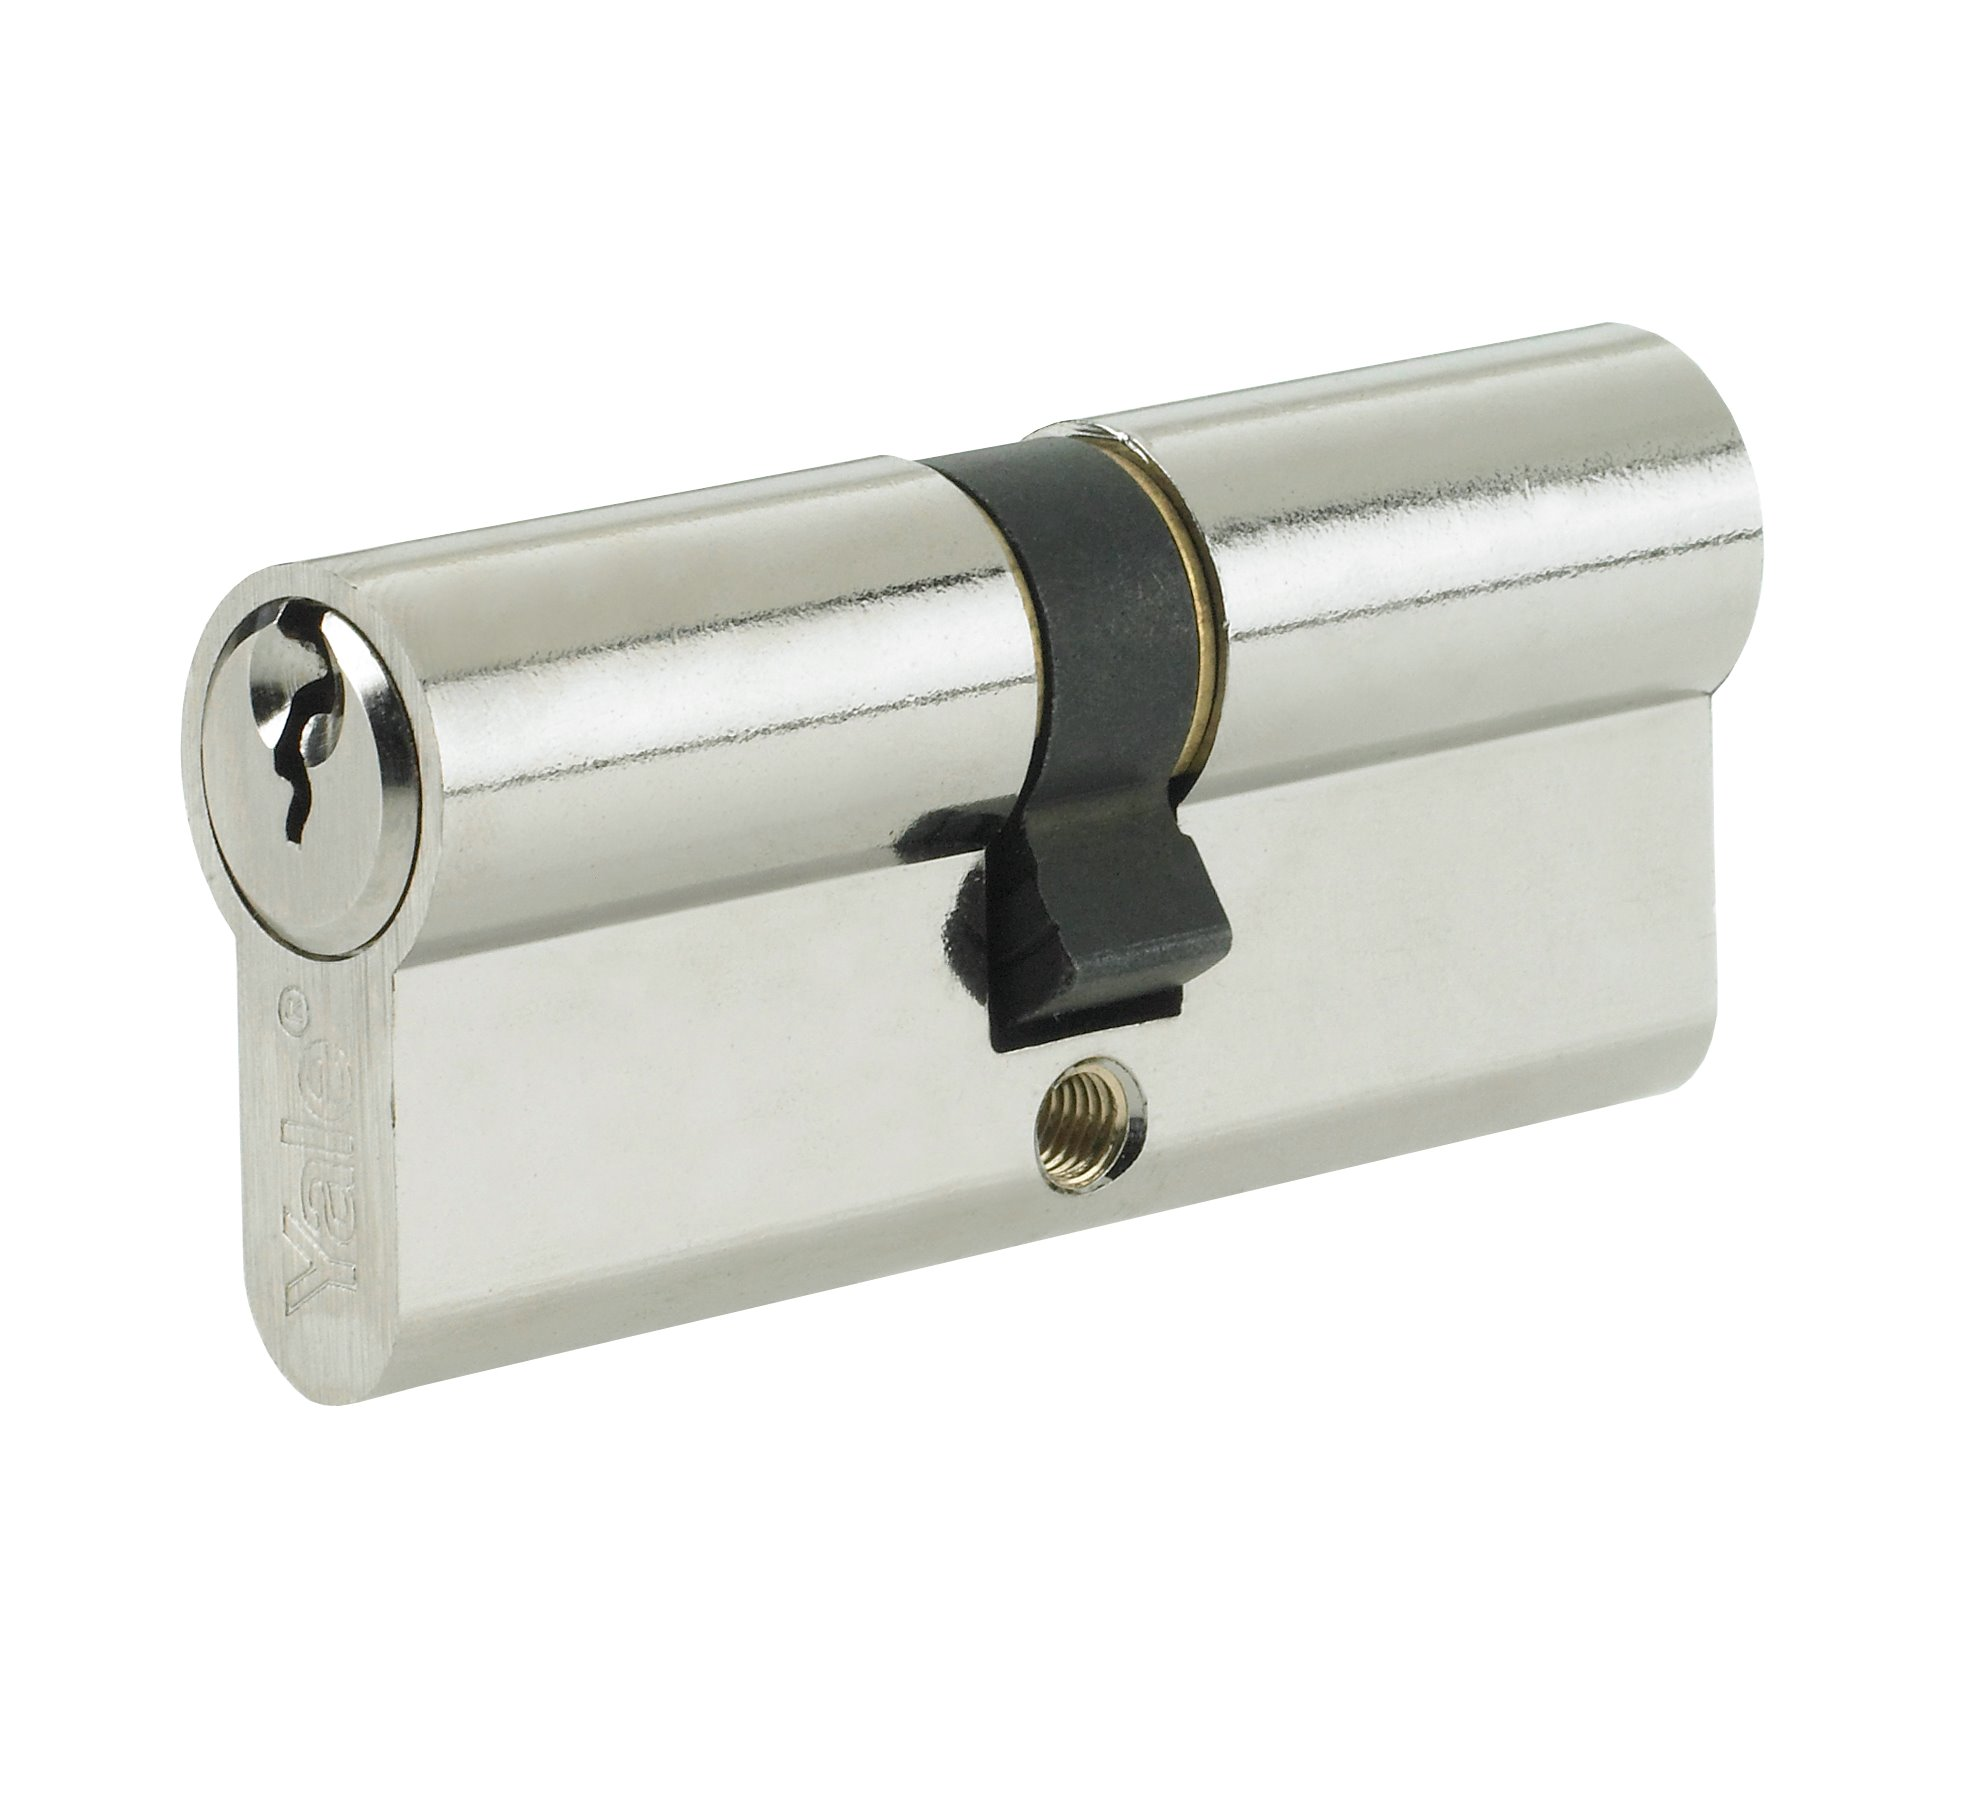 Security 6 Pin Euro Profile Cylinder